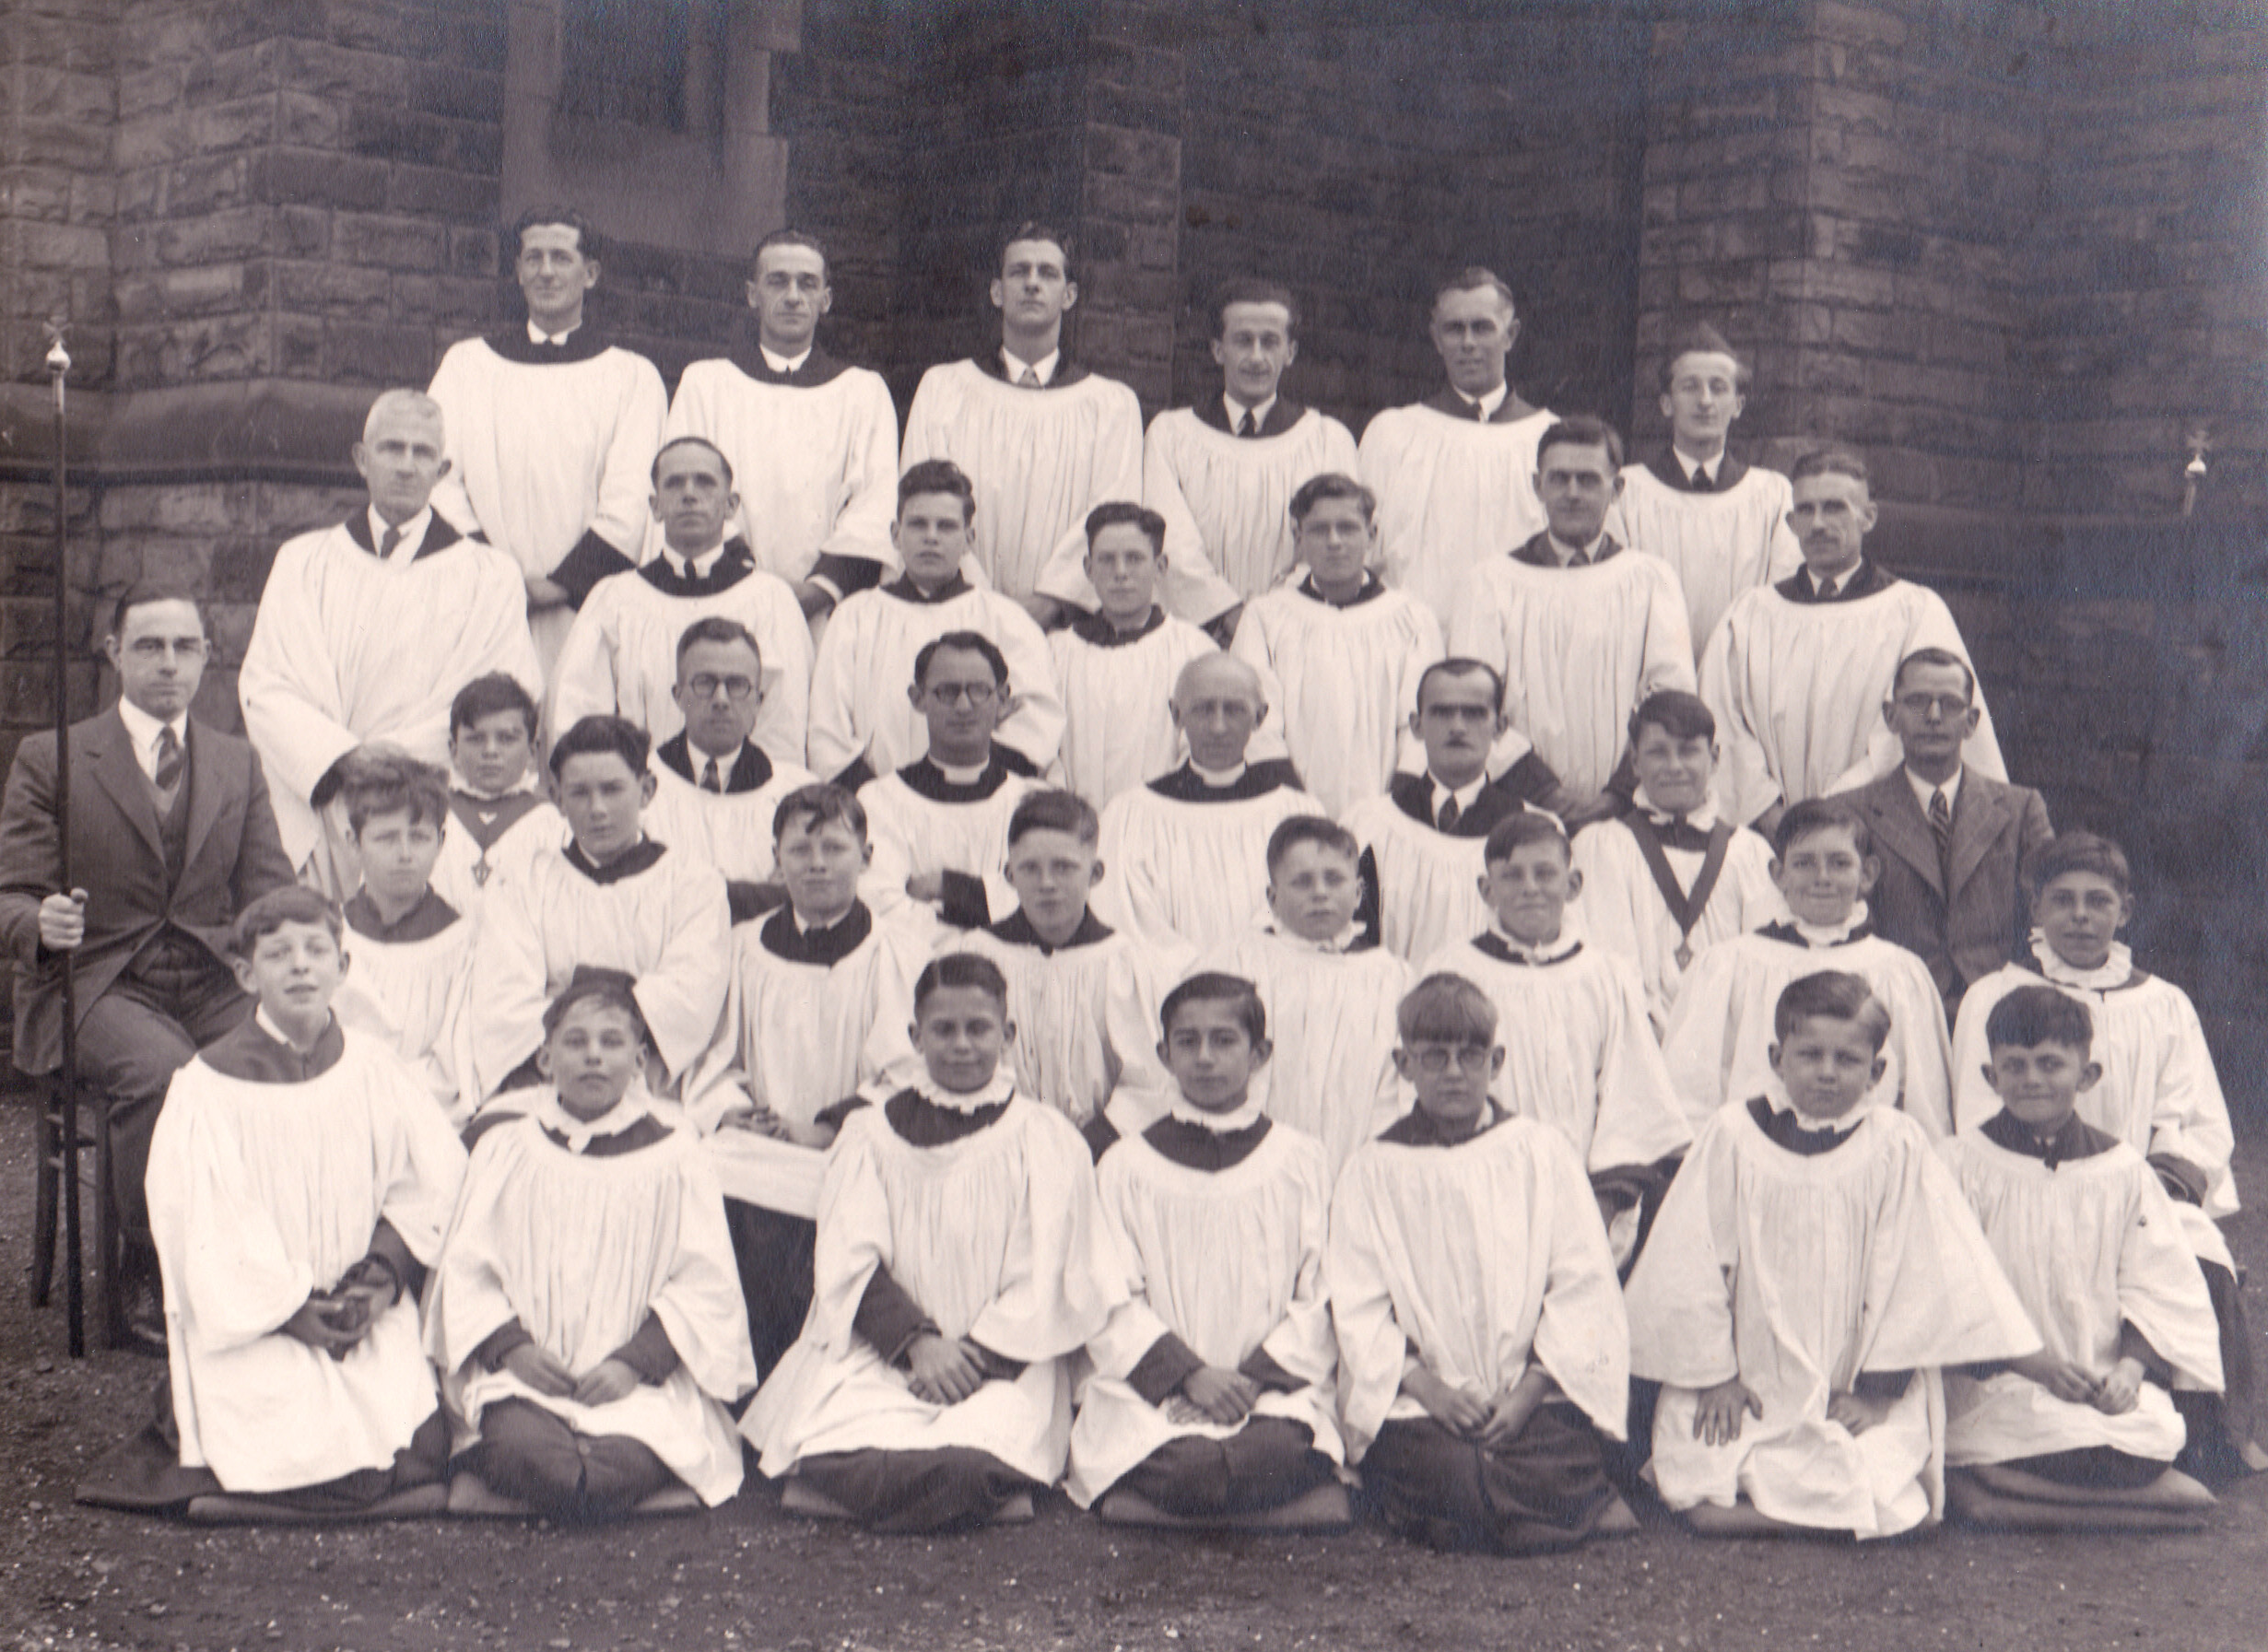 St Lawrence's Church. Choir photograph. George James Stacey (organist) and Mac Milner (choirmaster) are shown.